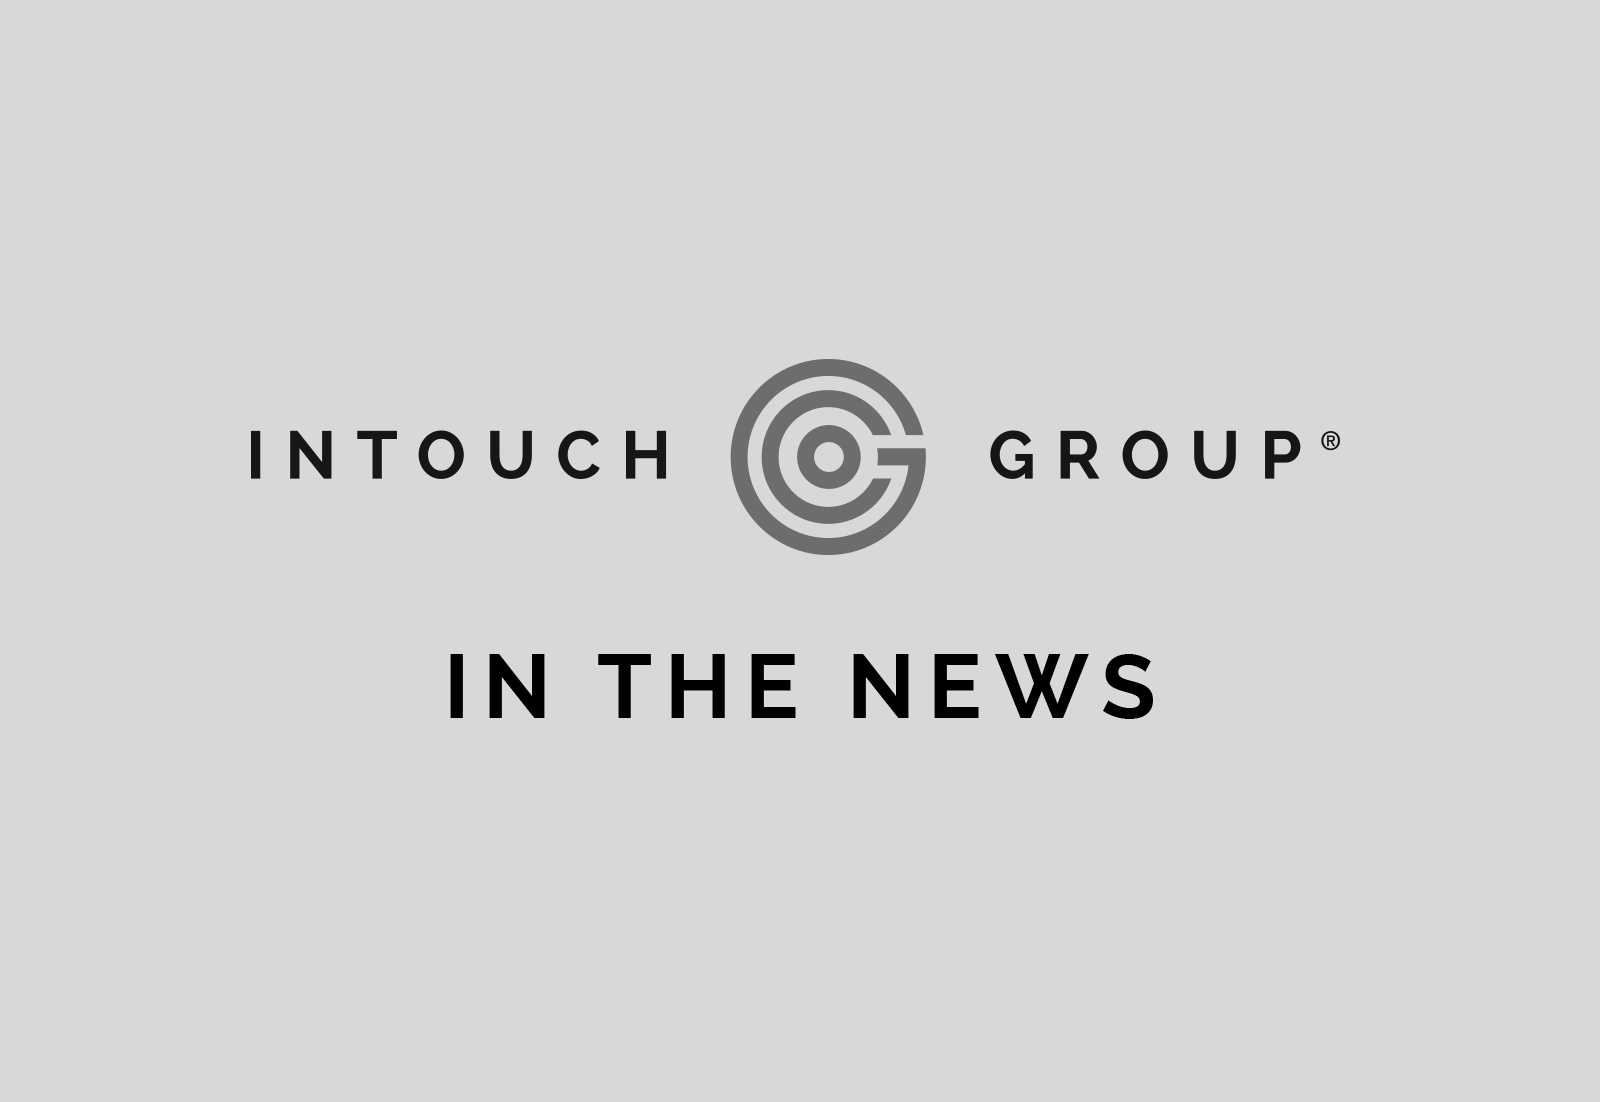 Intouch Group In the news